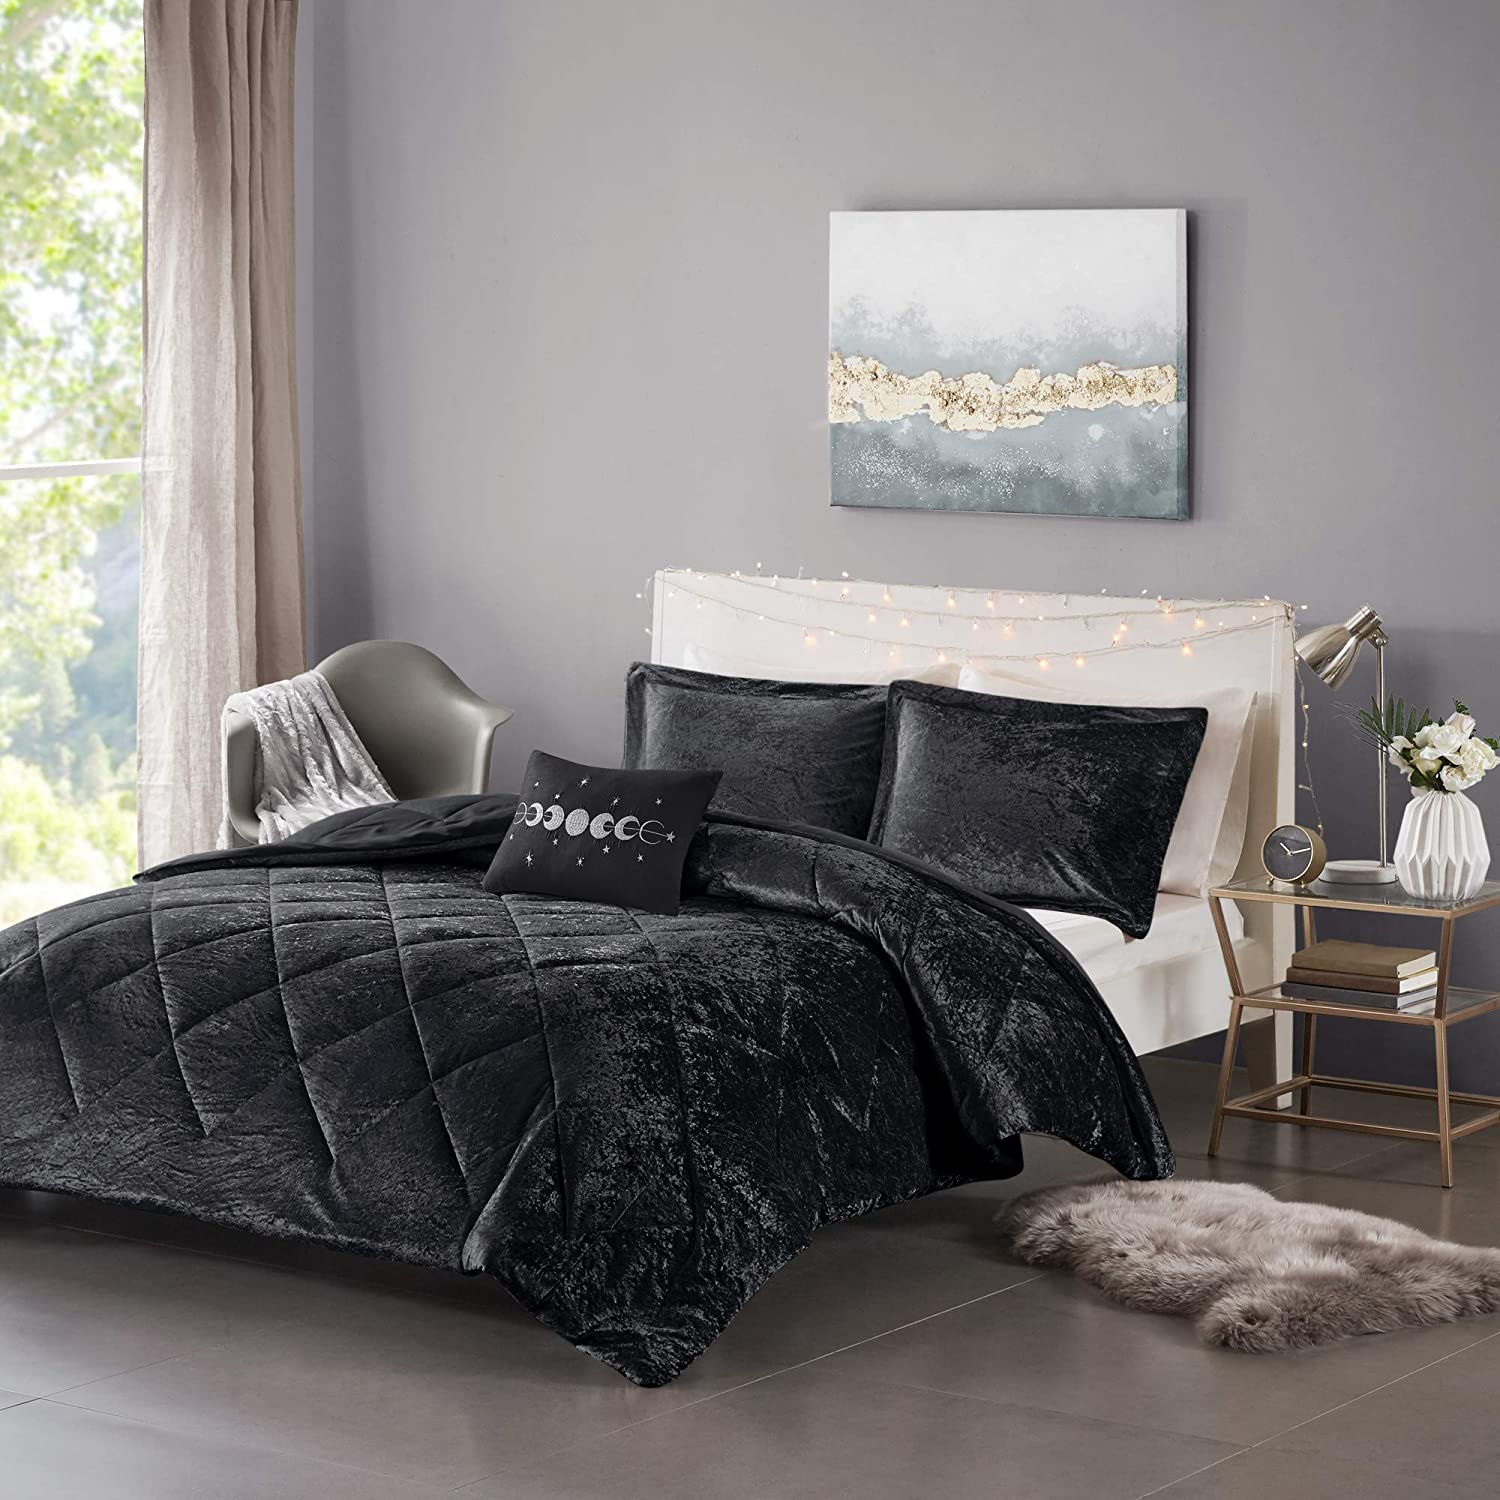 Intelligent Design Felicia Luxe Comforter Velvet Lush Double Sided Diamond Quilting Modern All Season Bedding Set with Matching Sham, Decorative Pillow, Full/Queen(90